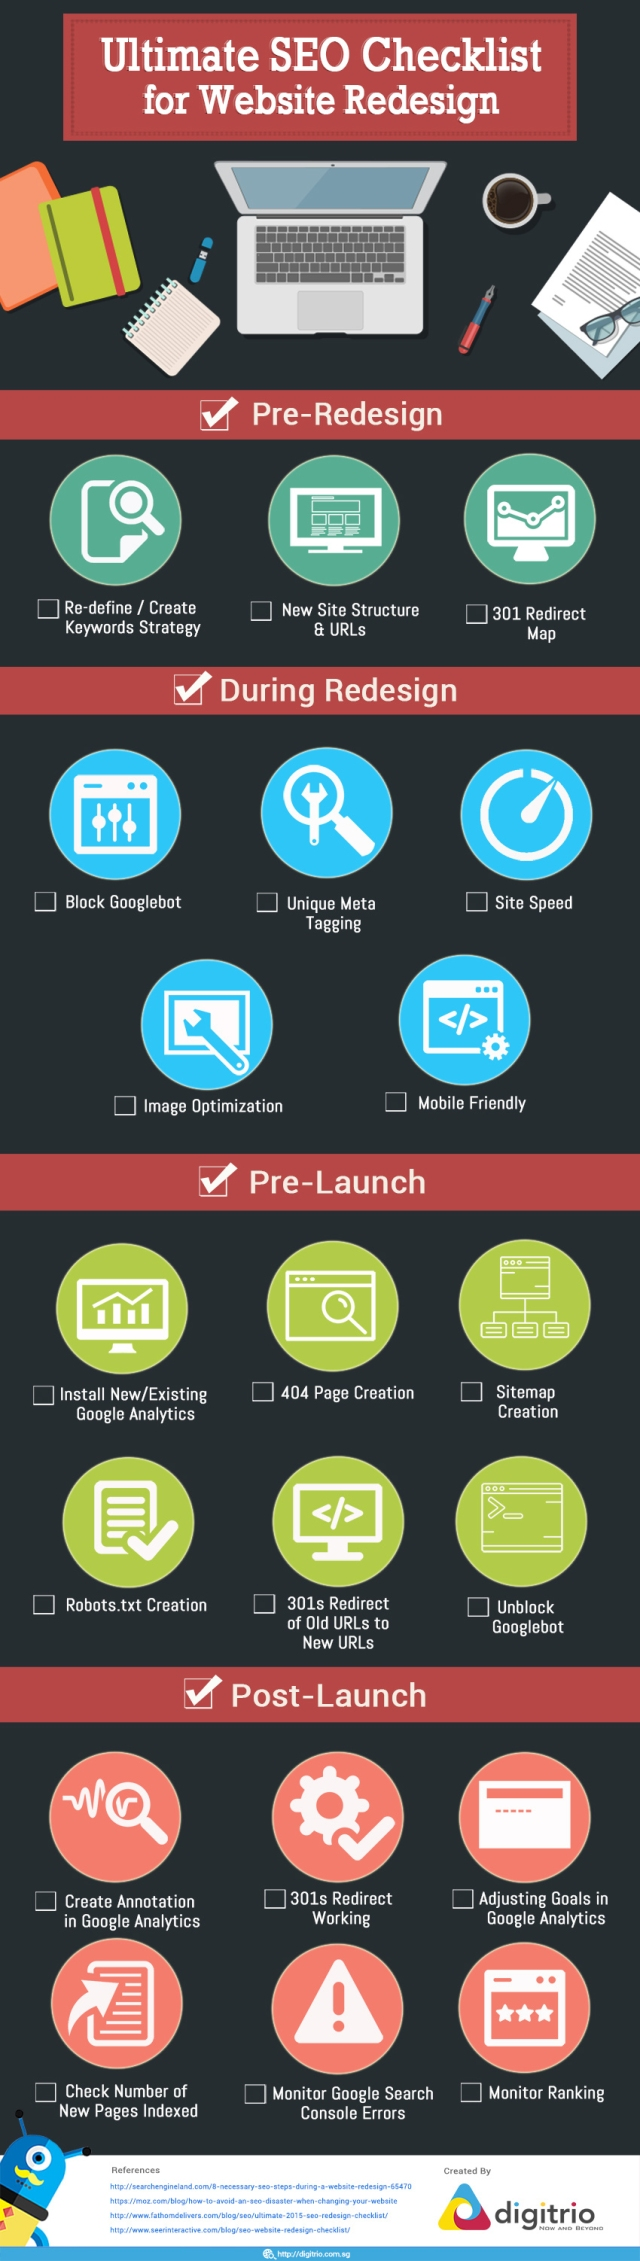 20 Step SEO Checklist You Must Follow When You Redesign Your Website